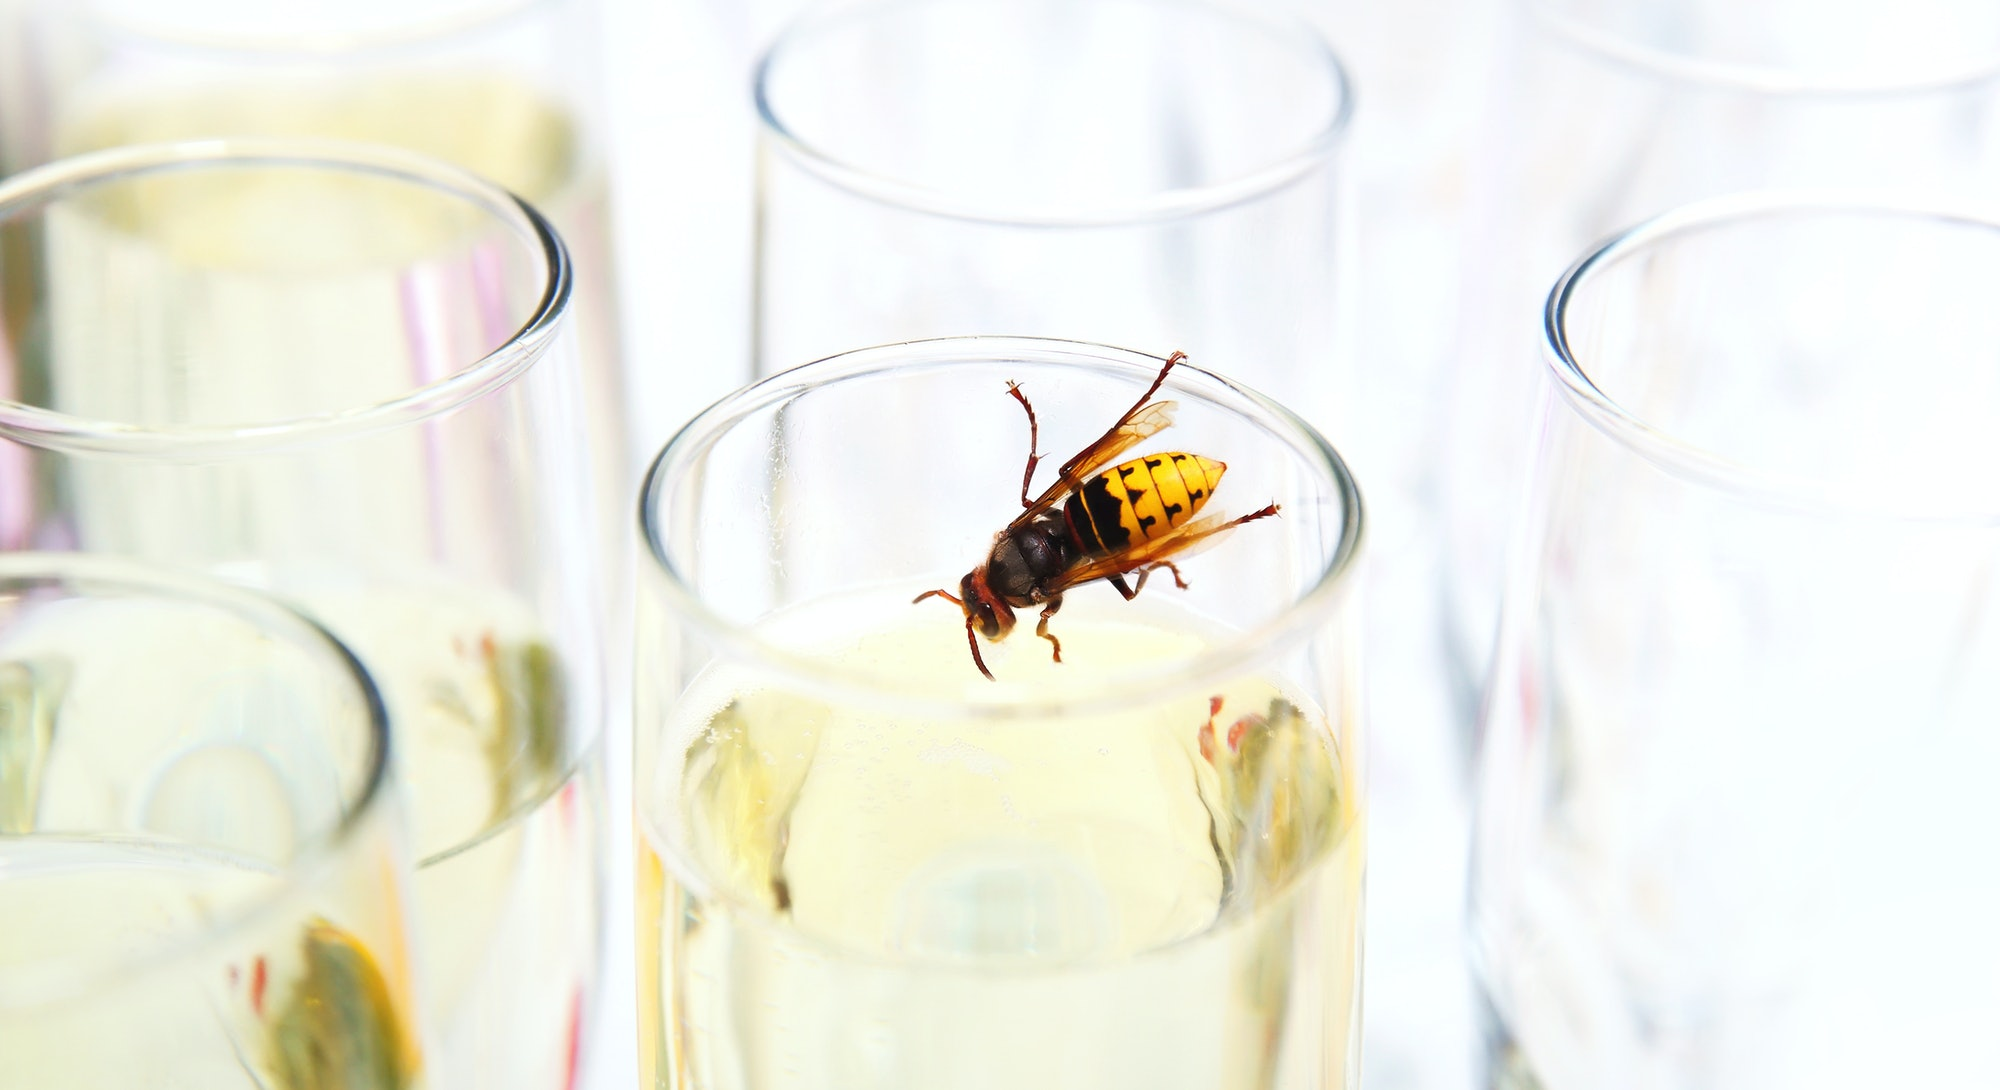 A wasp in a glass of champagne. Drinking animal